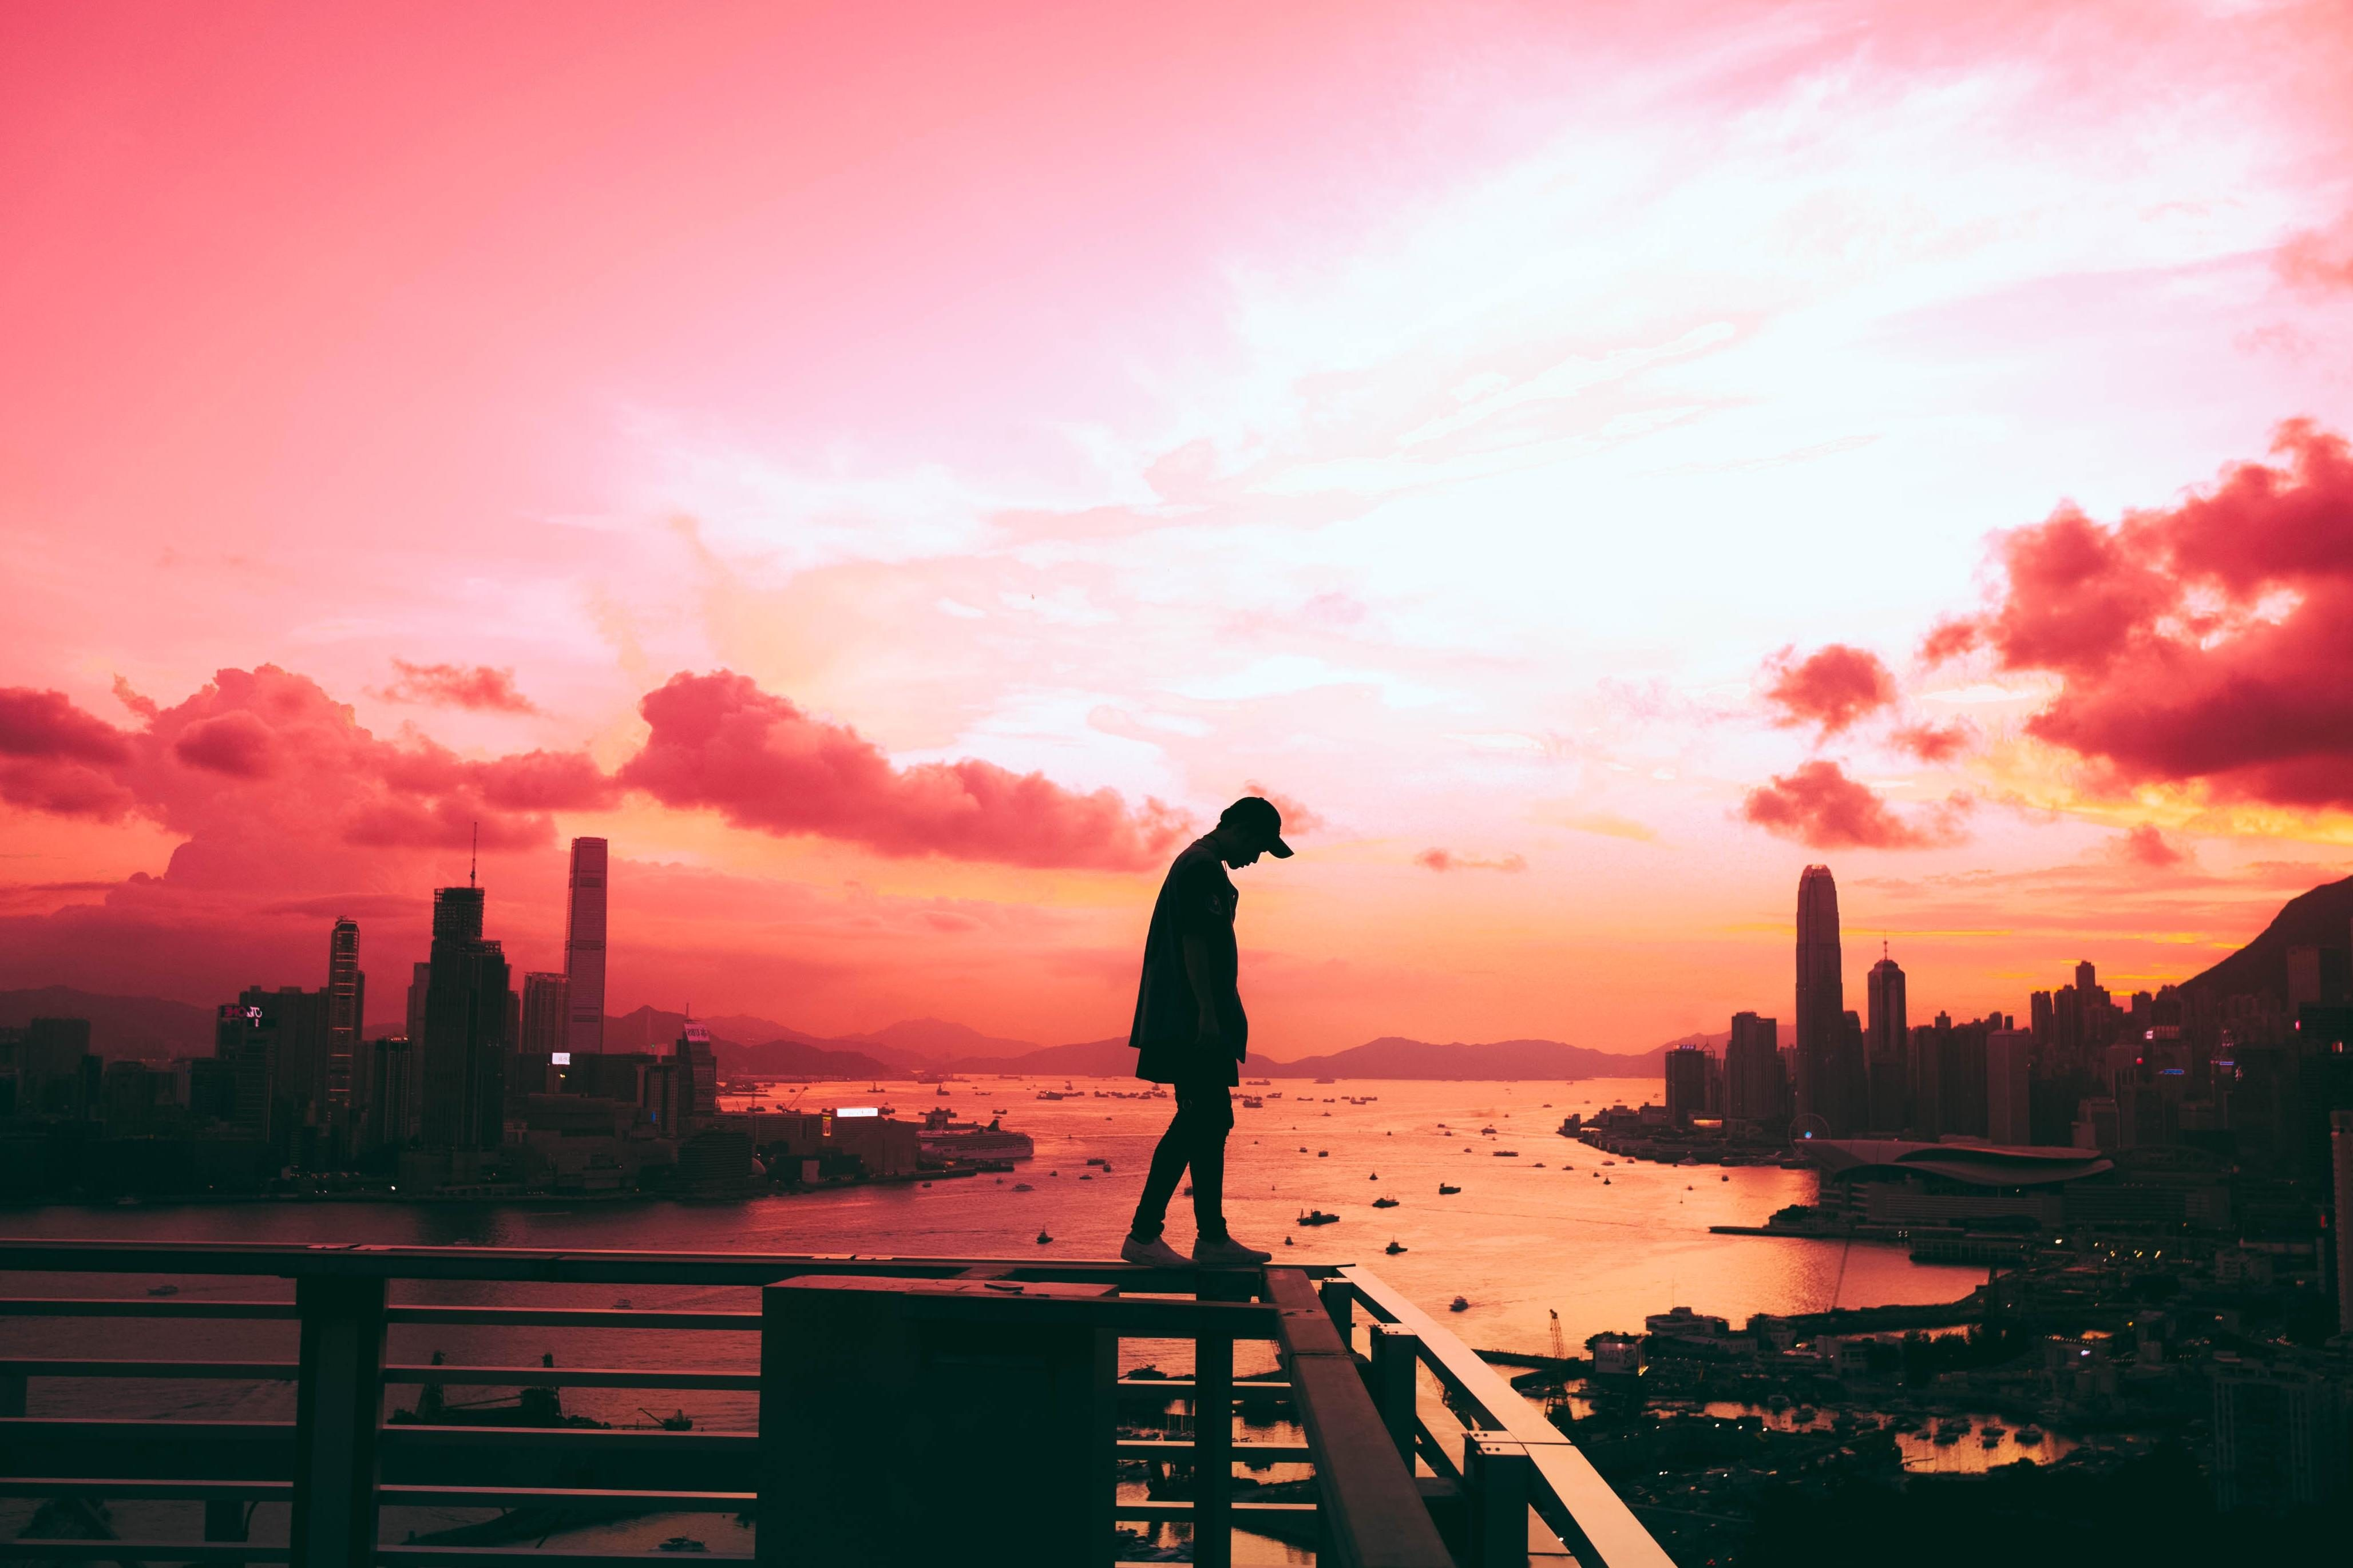 Free picture: sunset, dawn, water, sky, city, dusk, silhouette